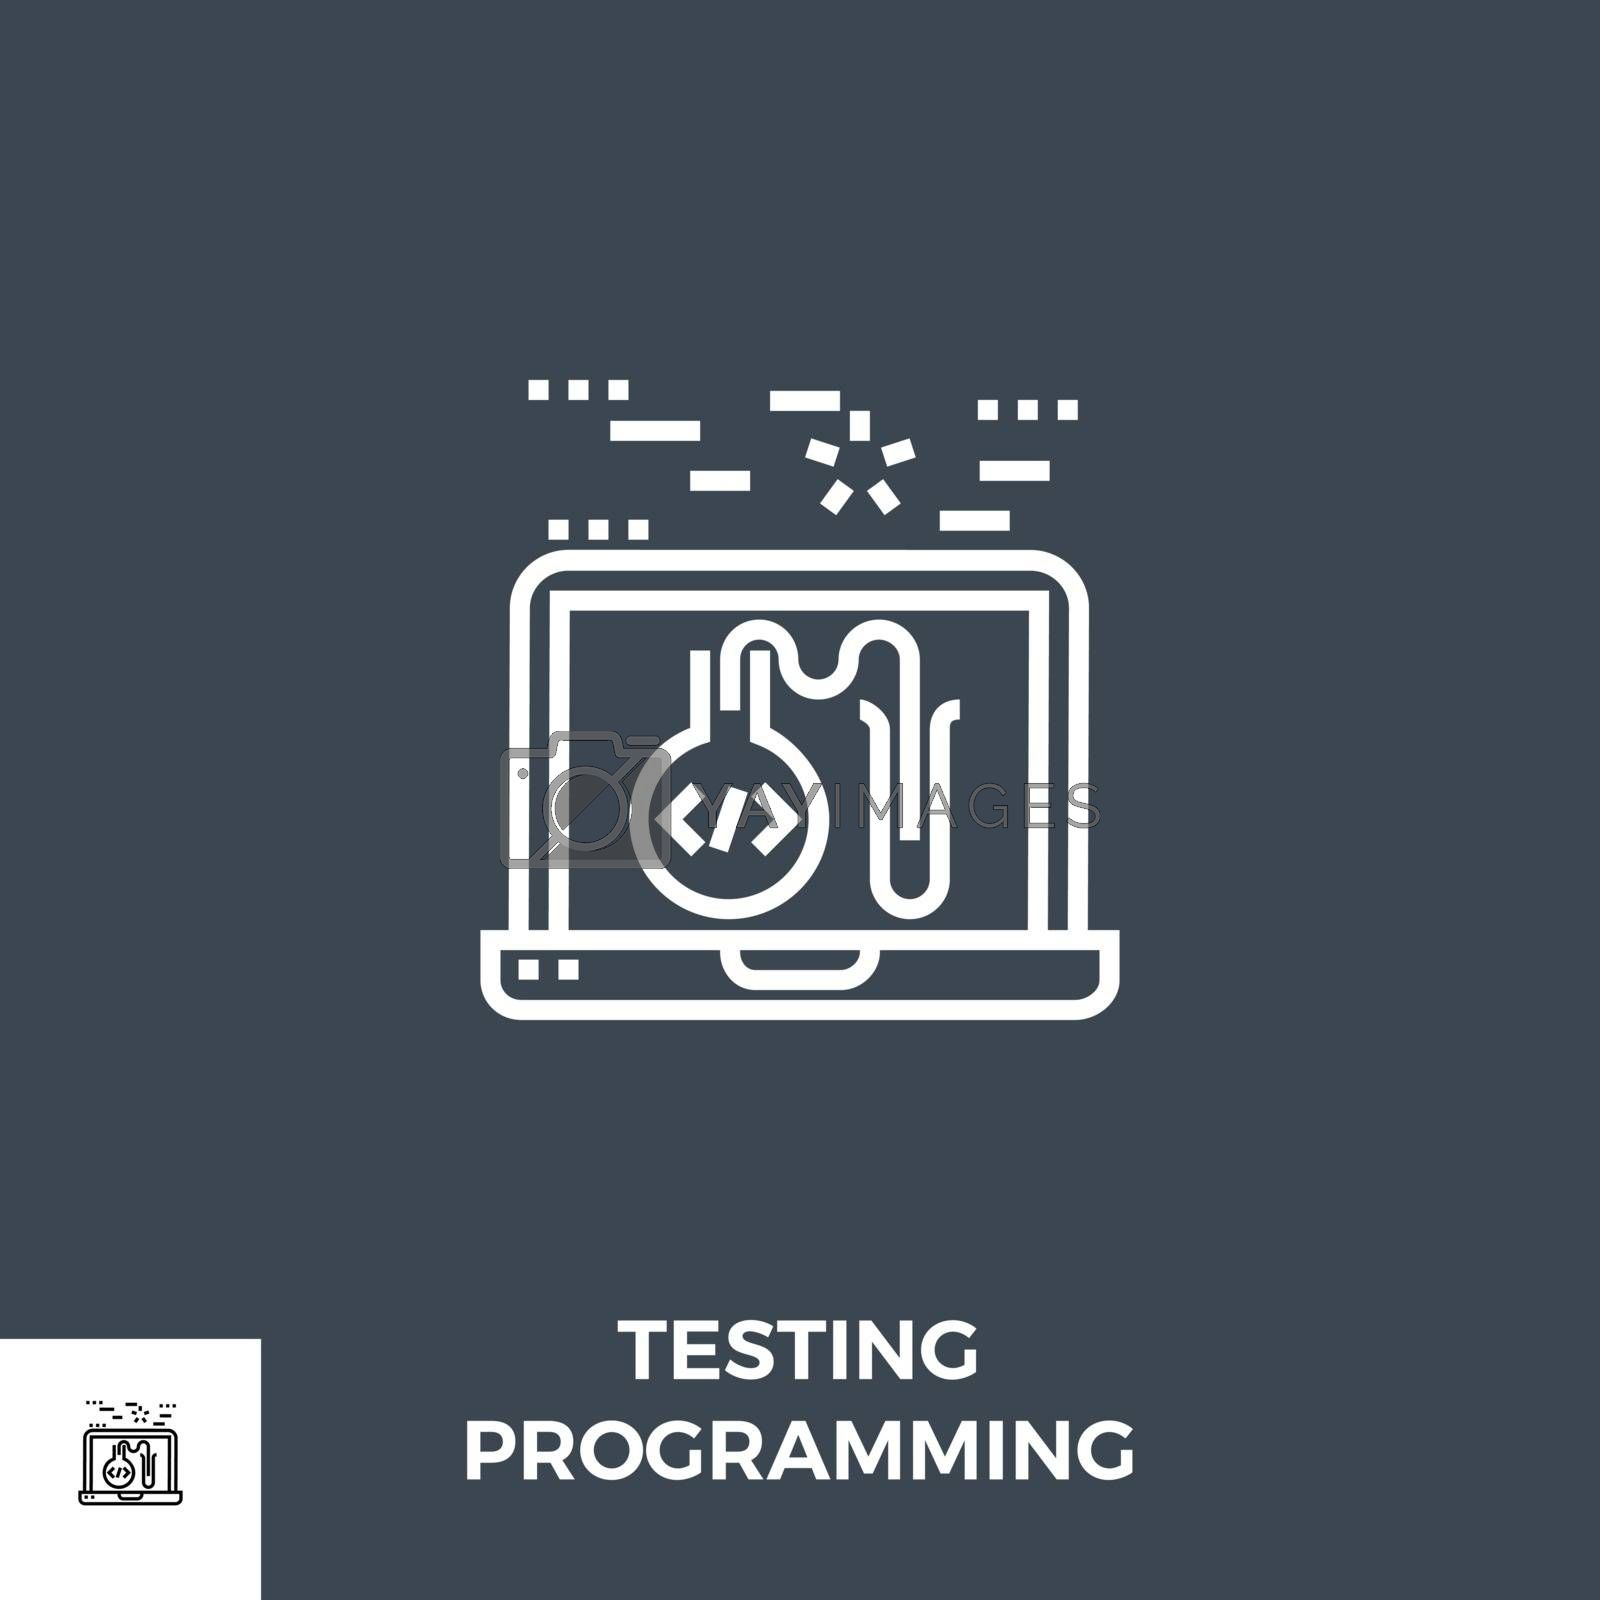 Testing Programming Related Vector Thin Line Icon. Isolated on Black Background. Vector Illustration.